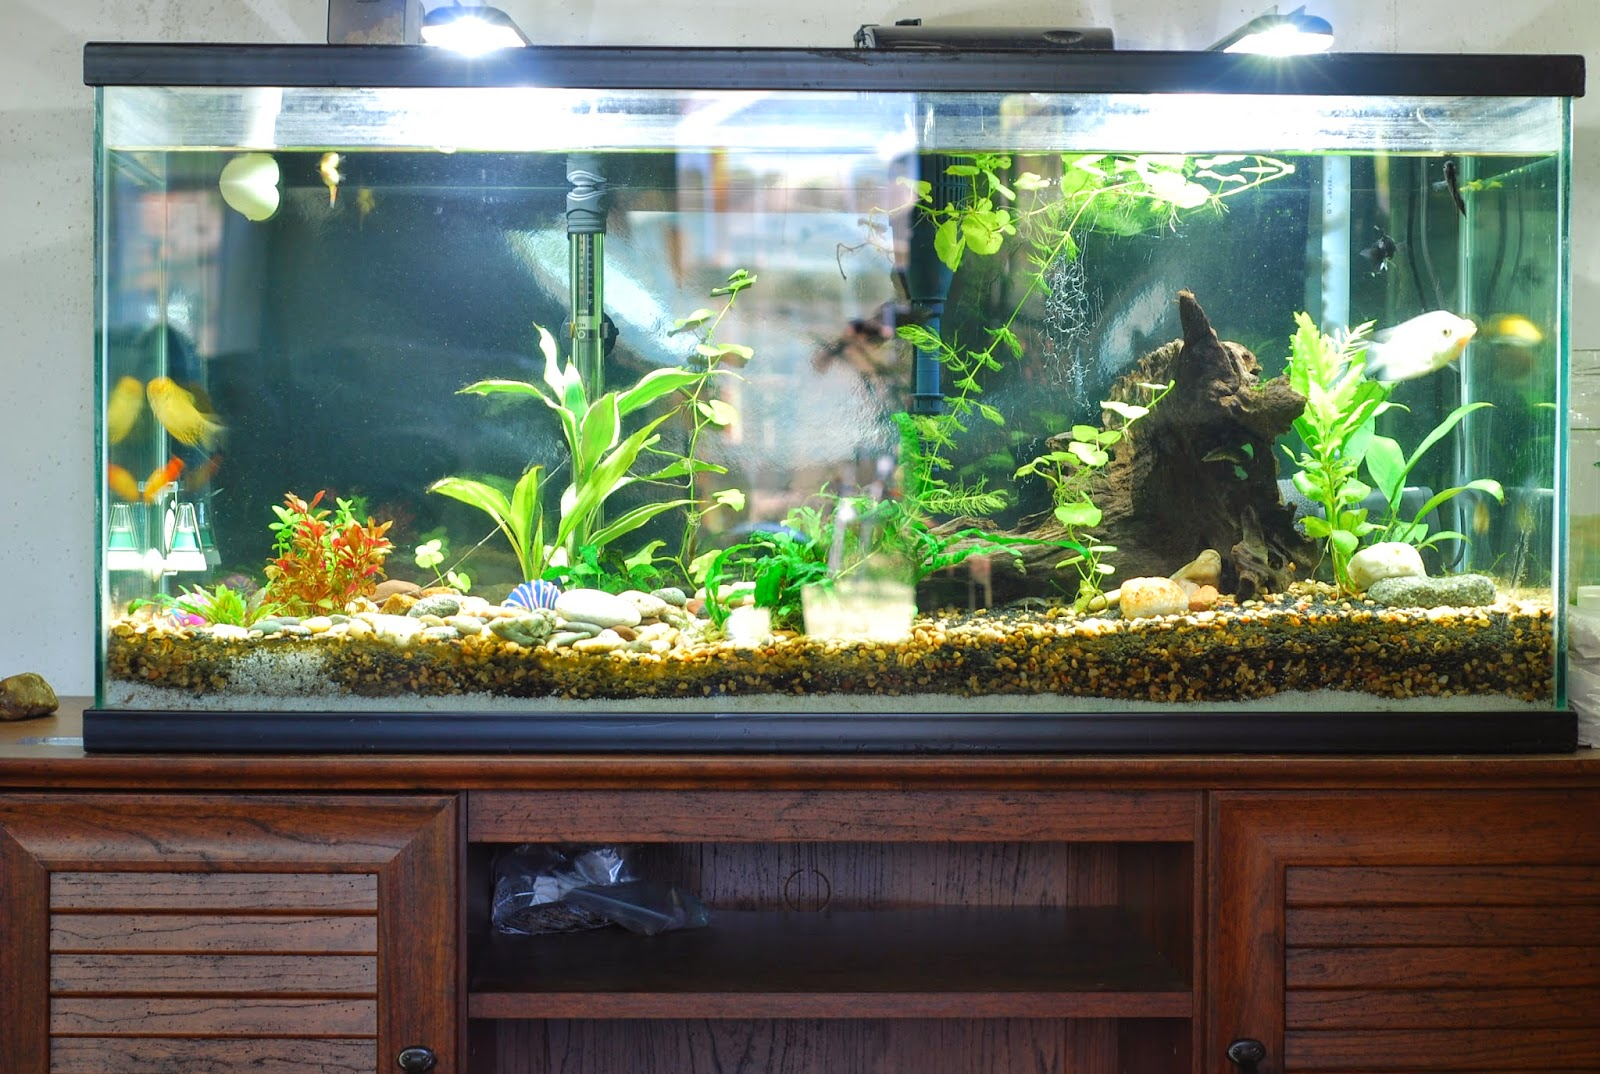 Fish in new aquarium - How To Start A New Aquarium Freshwater